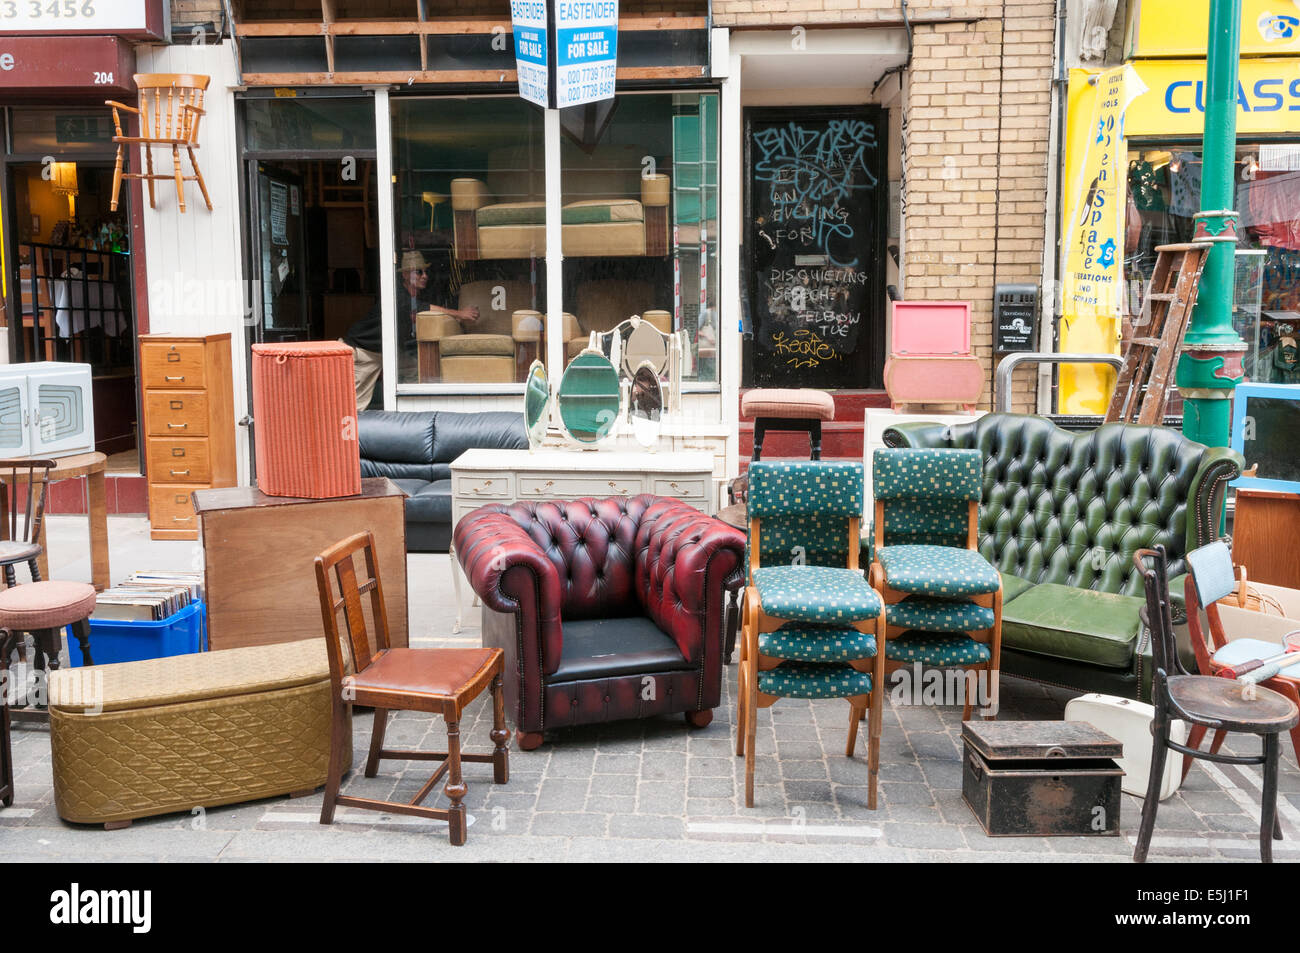 second hand used furniture for sale on brick lane tower hamlets stock photo 72311093 alamy. Black Bedroom Furniture Sets. Home Design Ideas